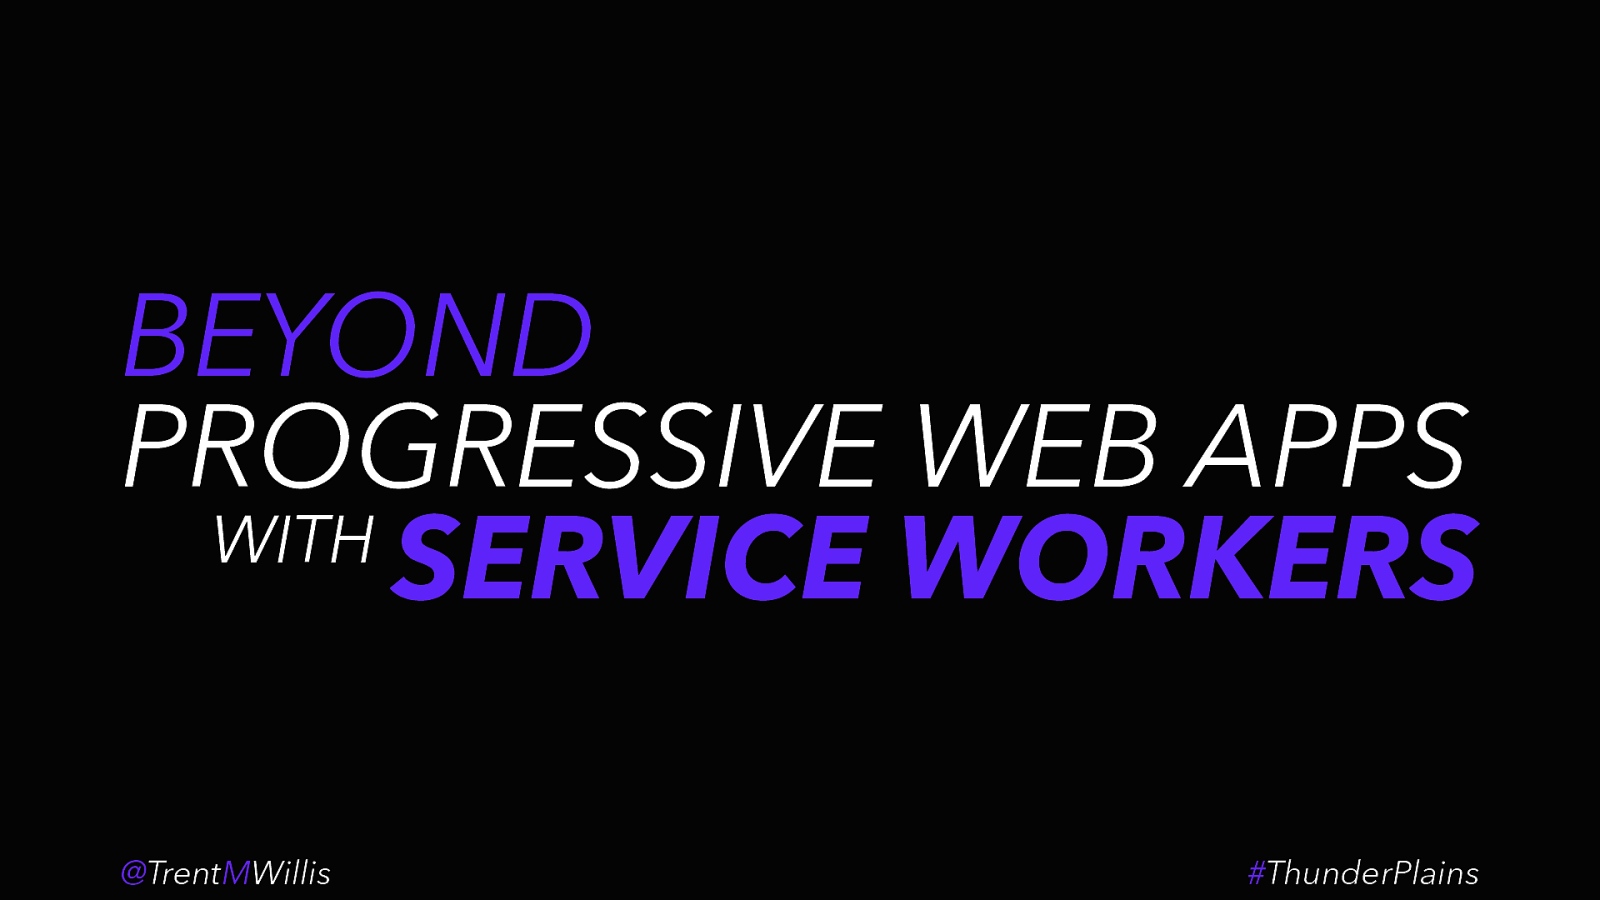 Going Beyond Progressive Web Apps With Service Workers